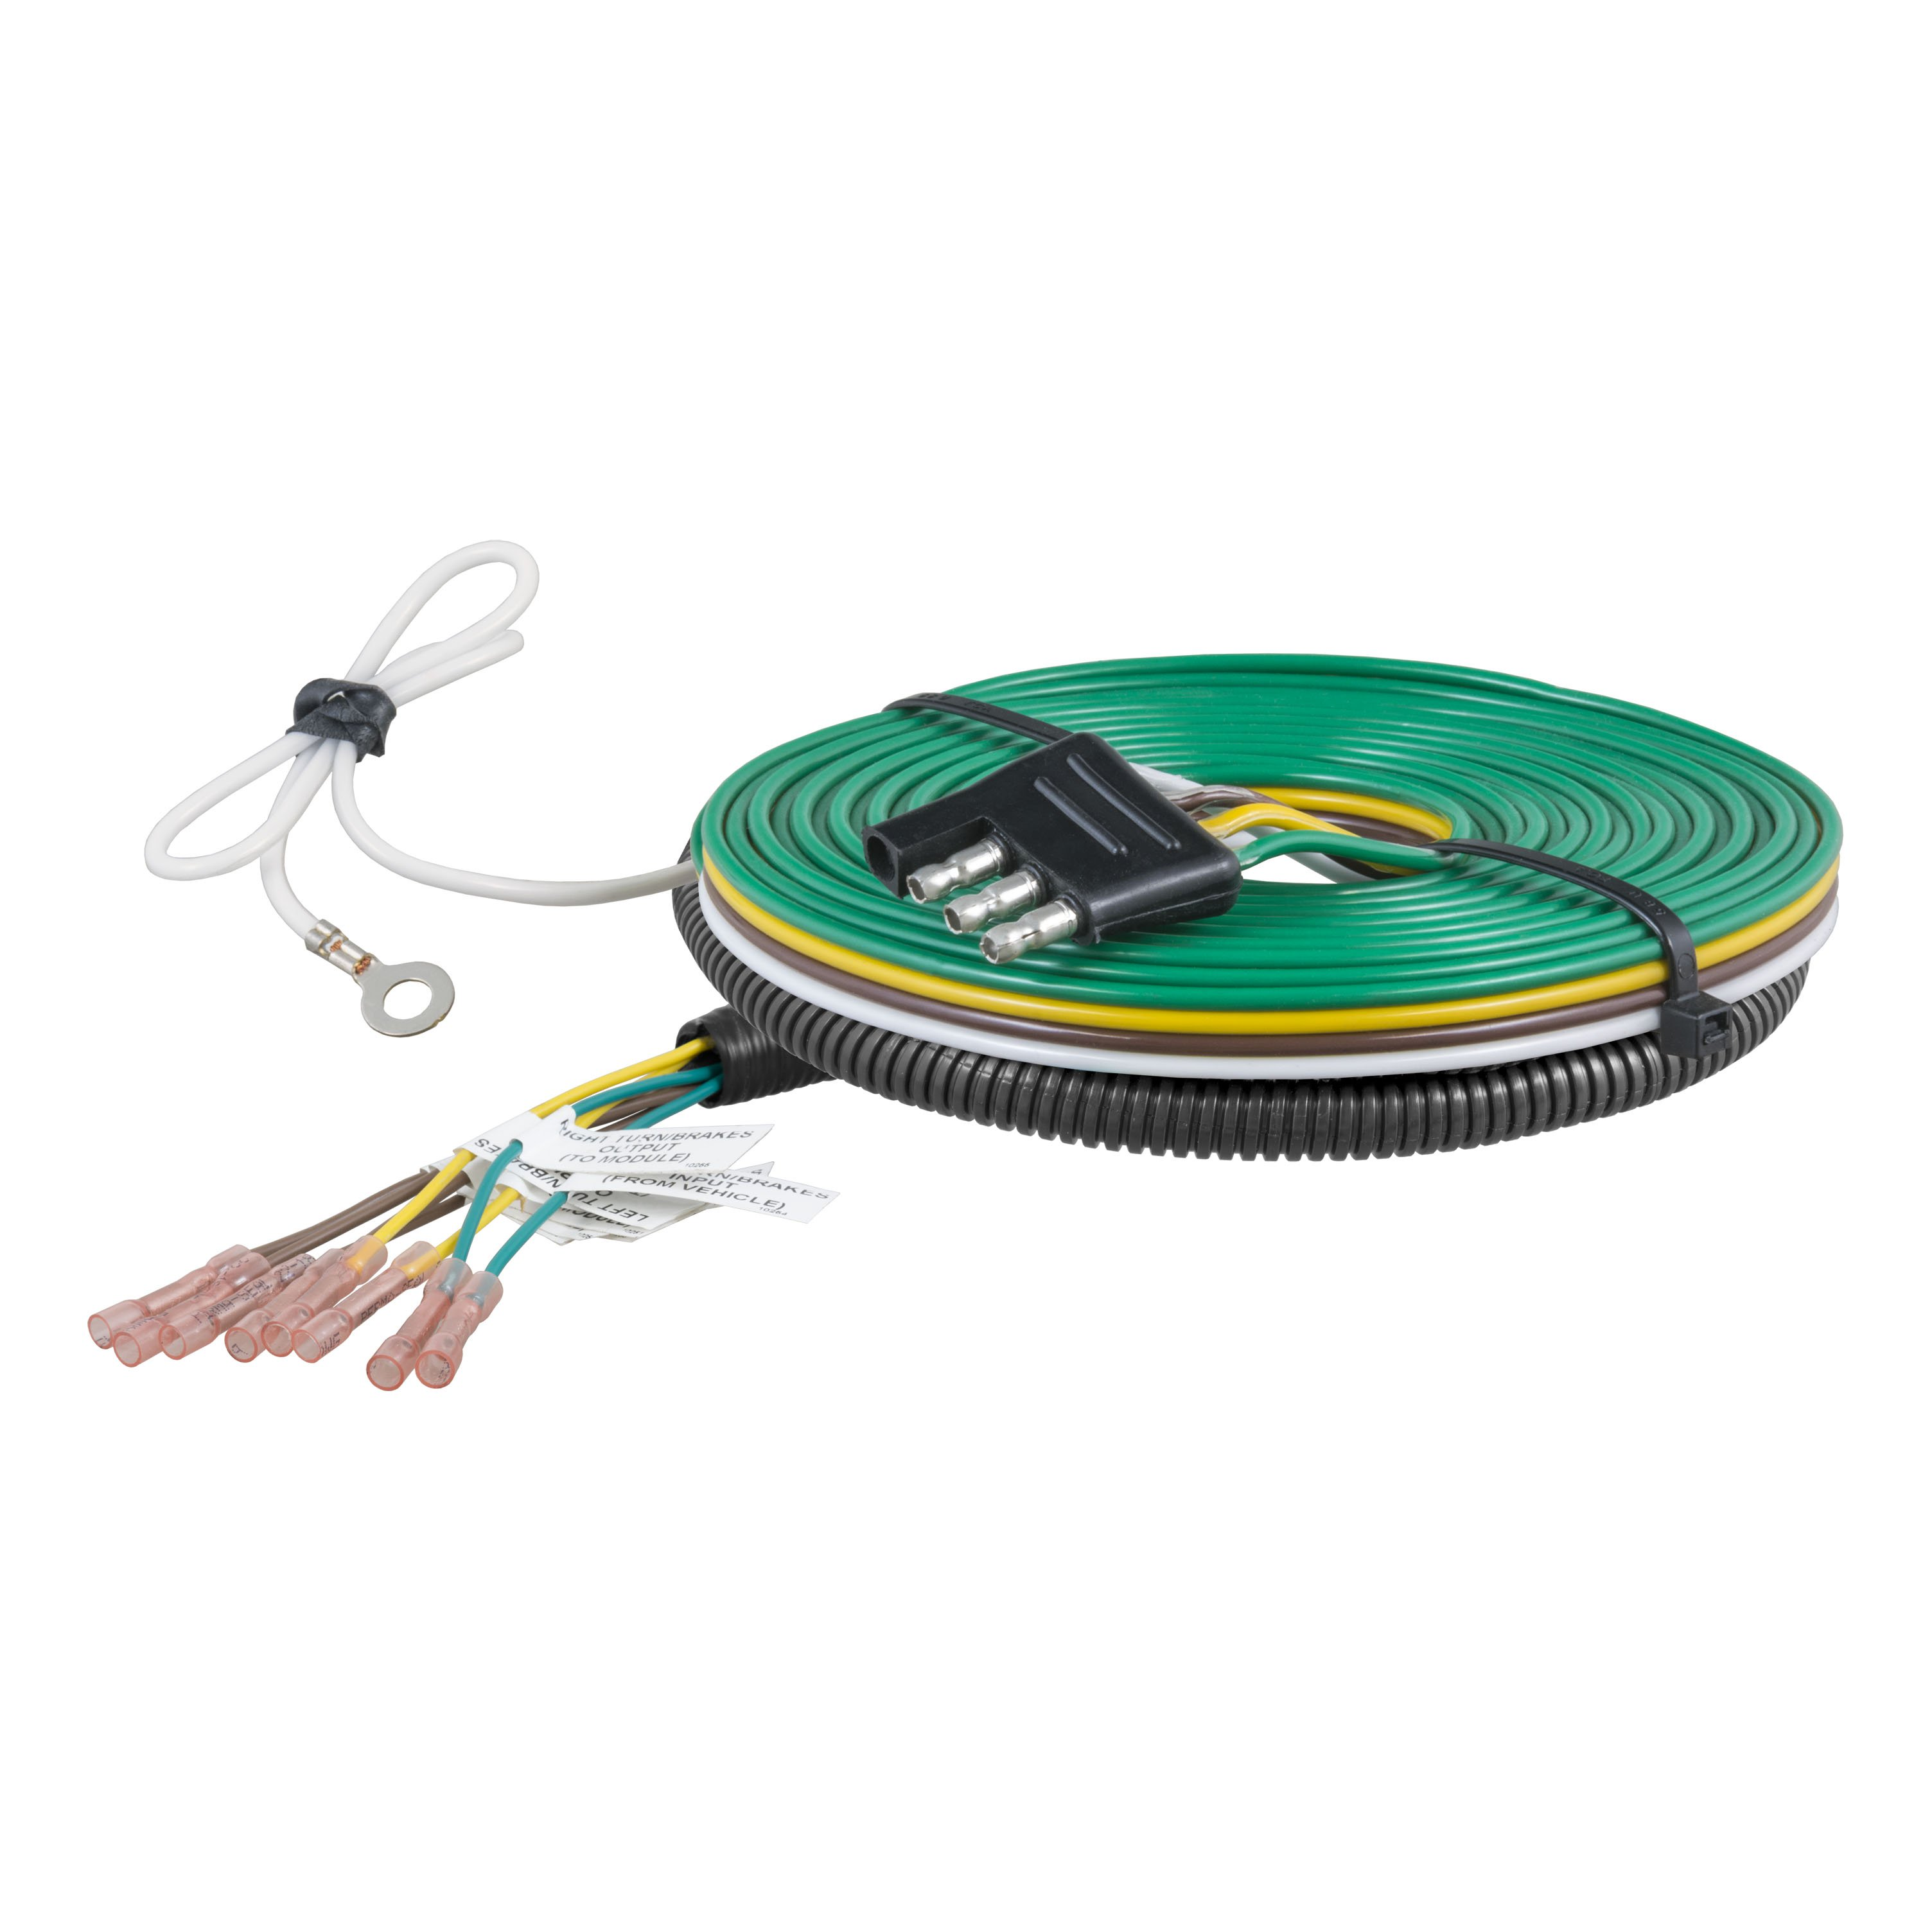 All Products For 2009 Chevrolet Silverado 1500 Tow Vehicle Wiring Harness Custom Towed Rv 58923